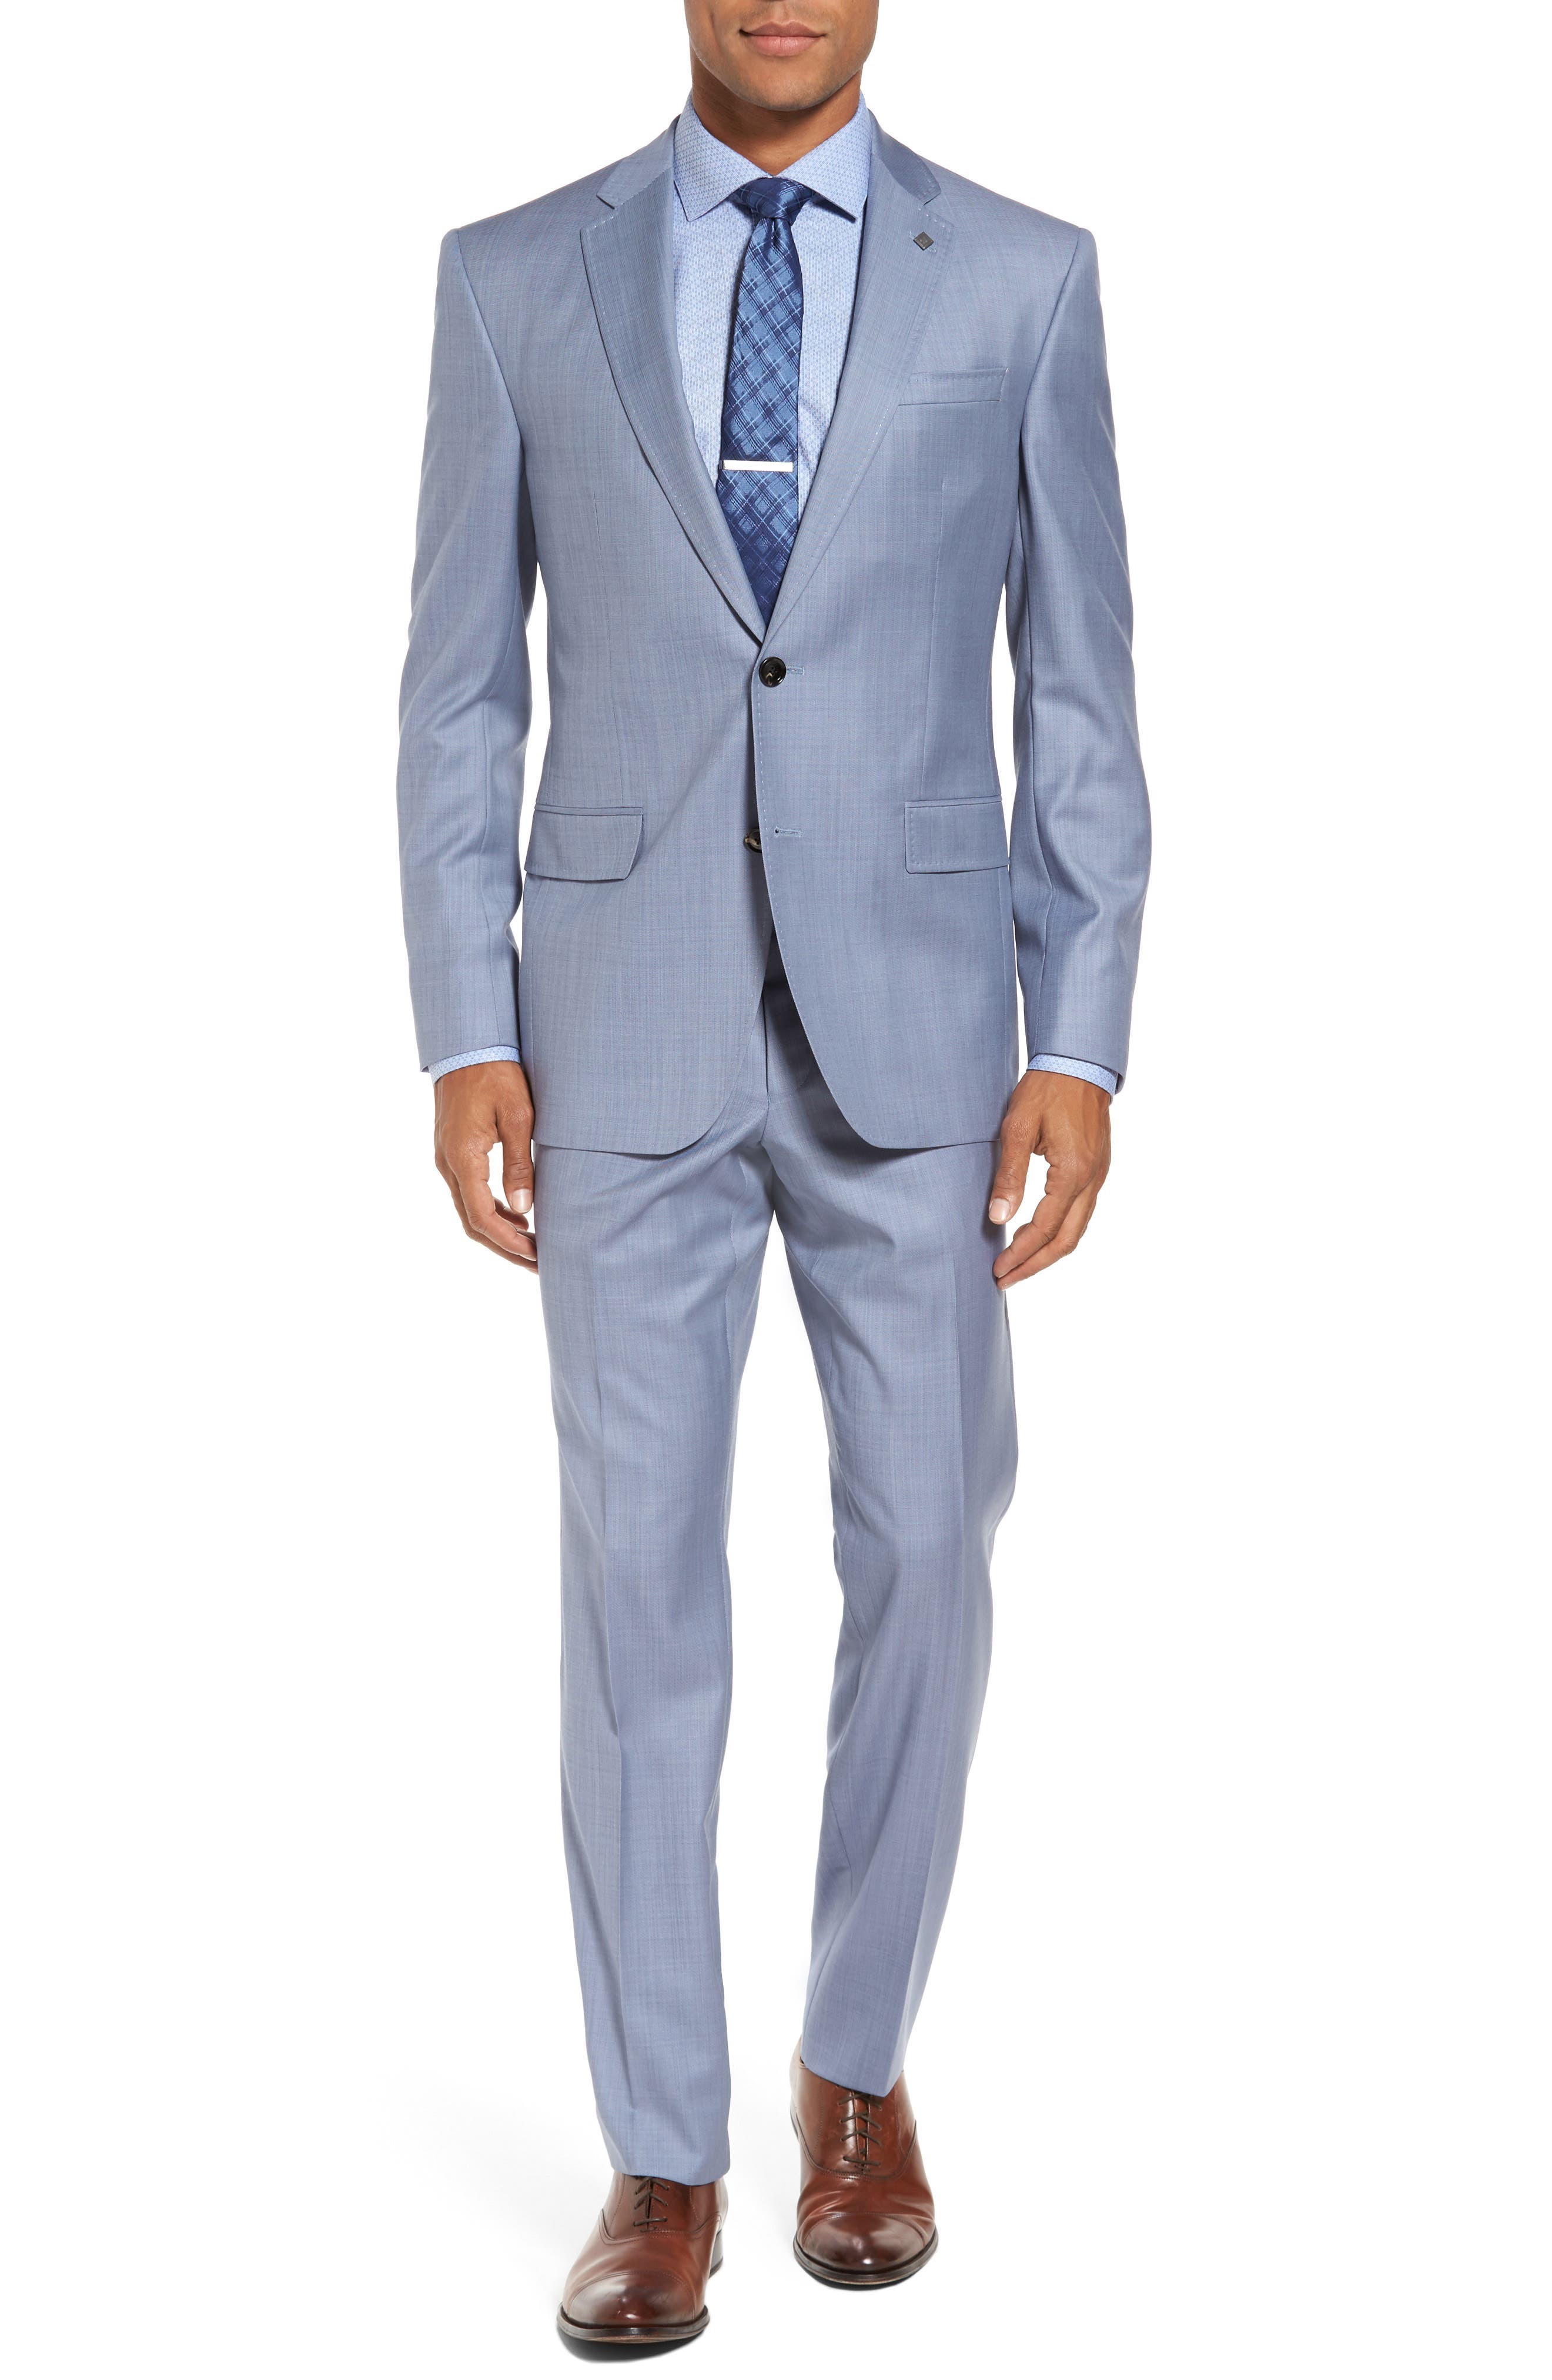 Alternate Image 1 Selected - Ted Baker London Trim Fit Solid Wool Suit